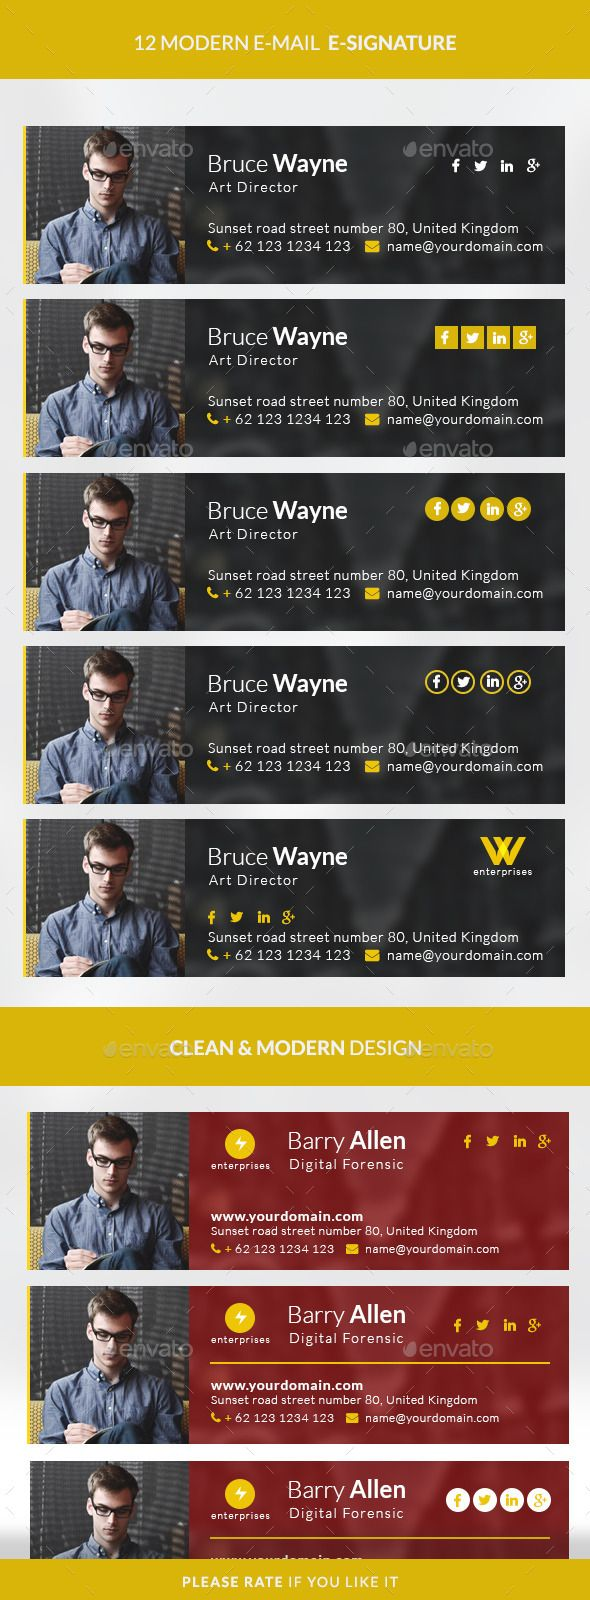 Modern E-signature | Email signatures, Modern and Newsletter templates